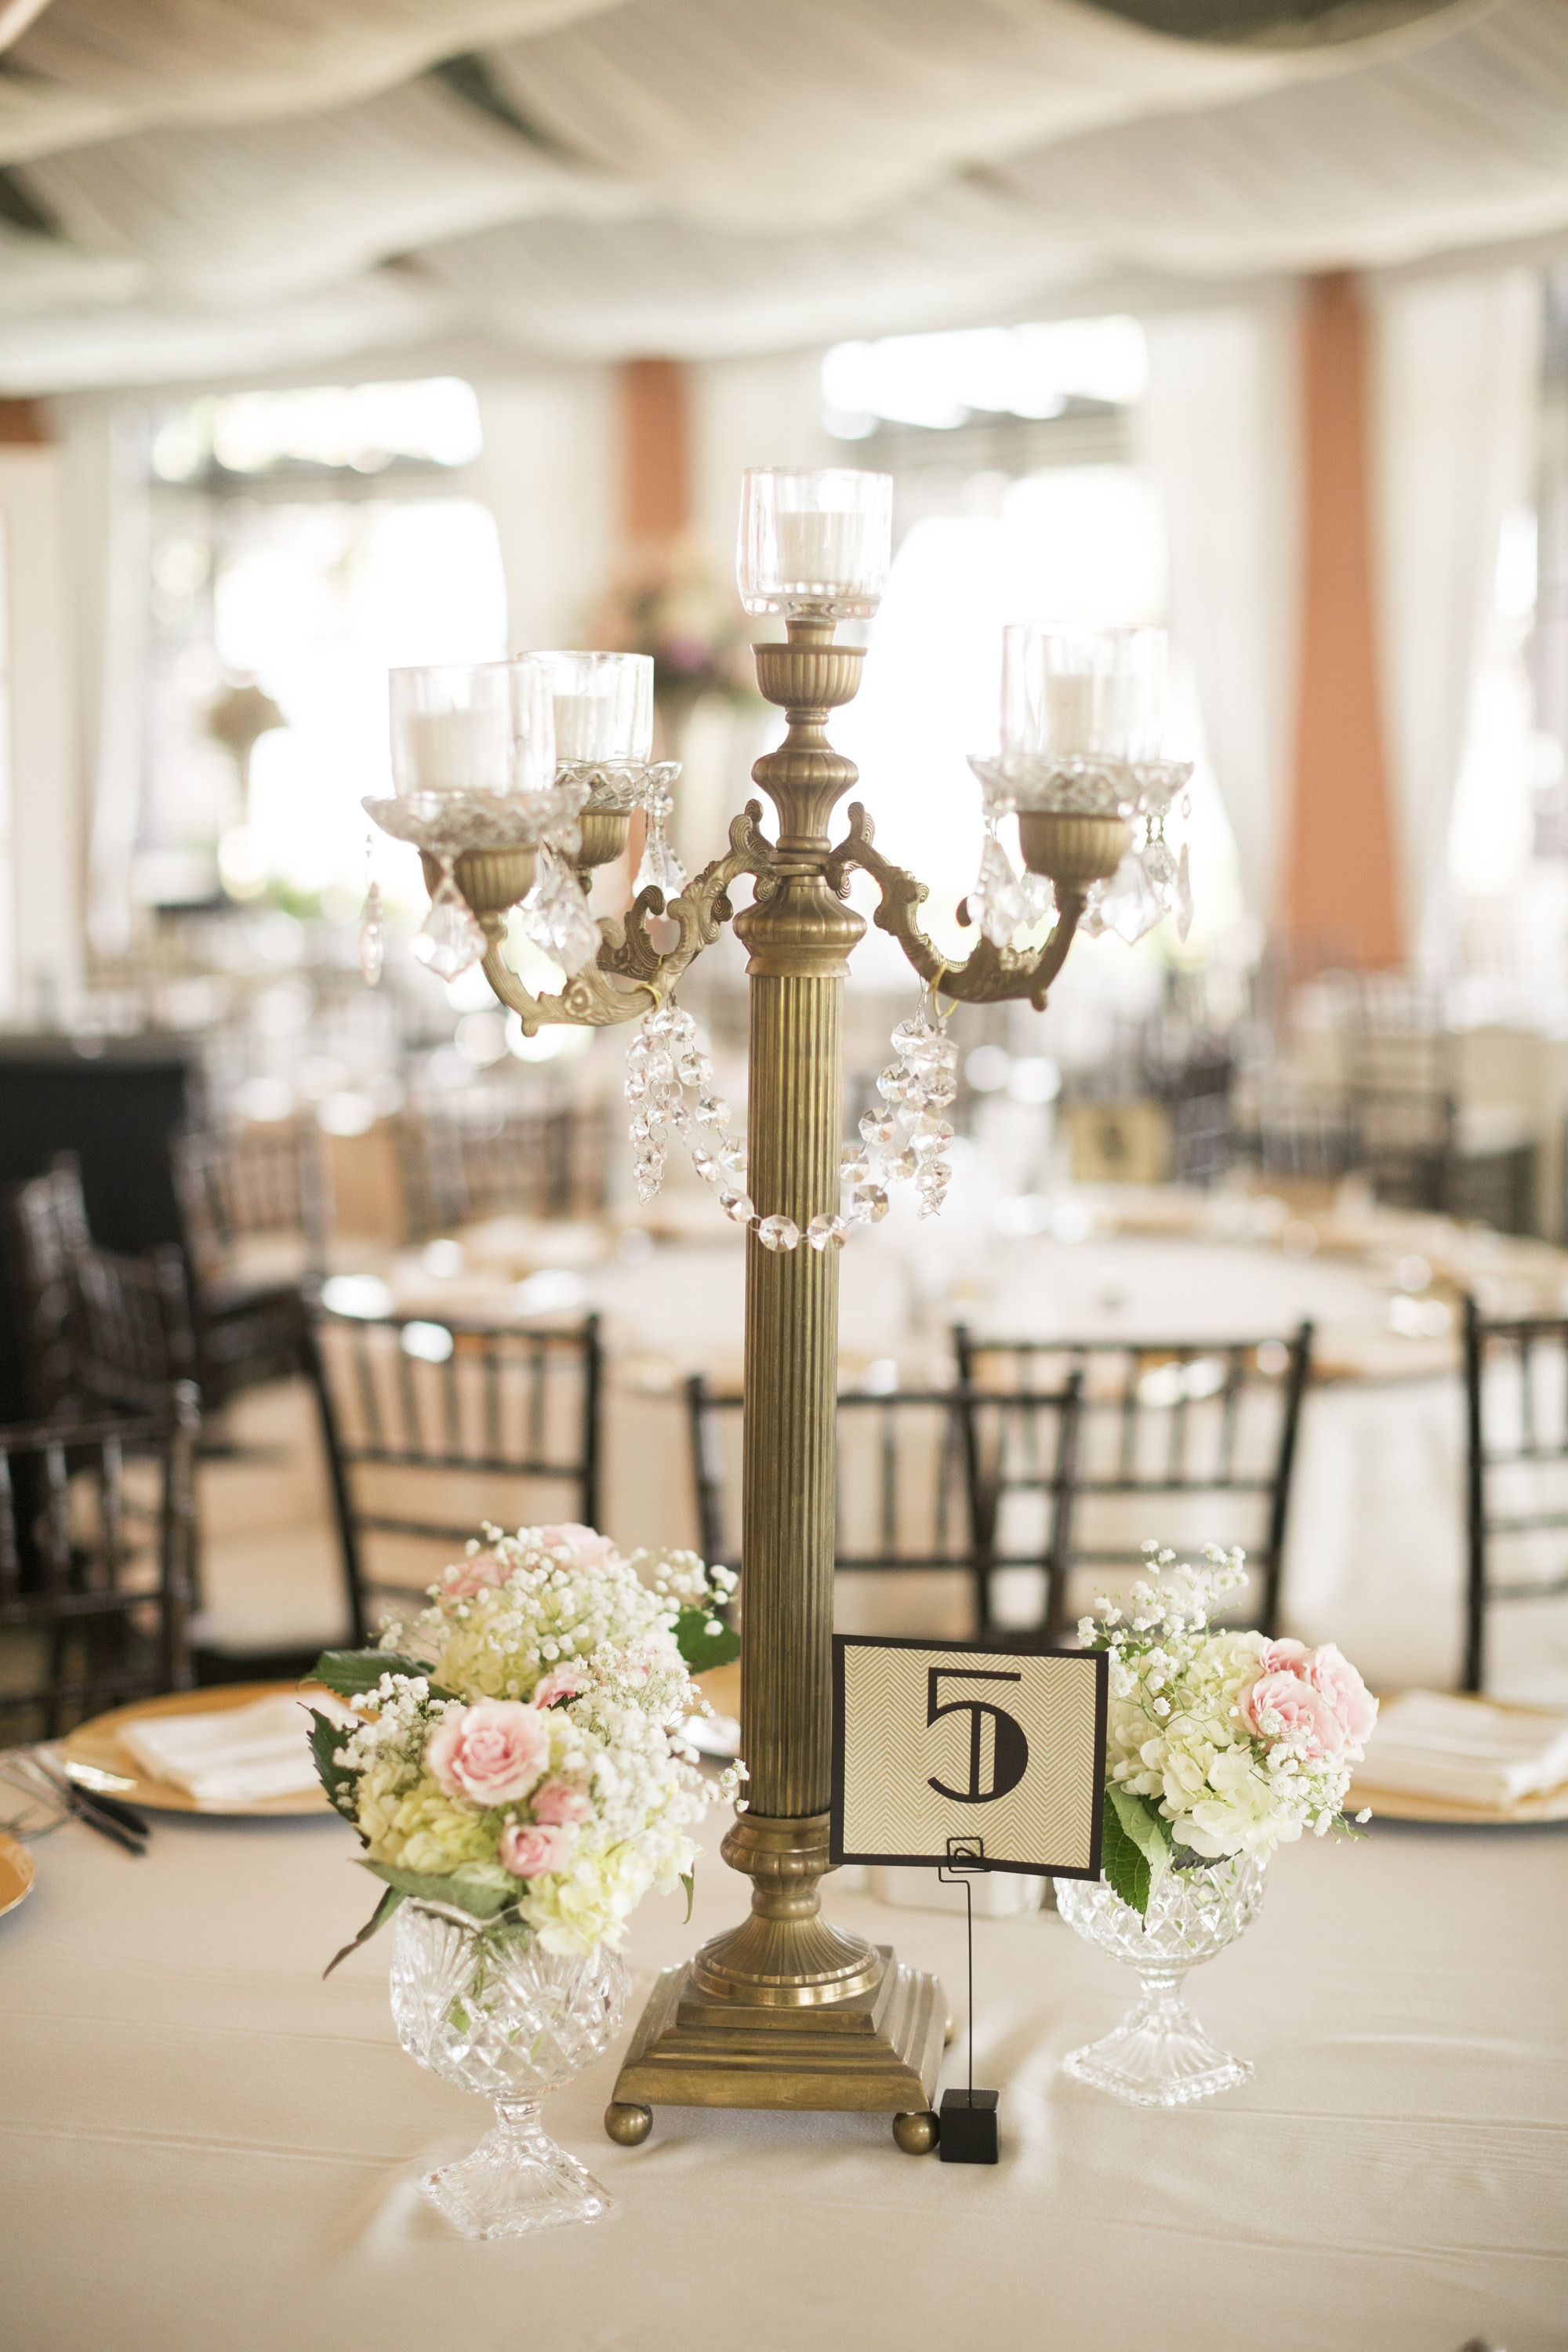 Great Gatsby Inspired Galveston Wedding from Mustard Seed ...